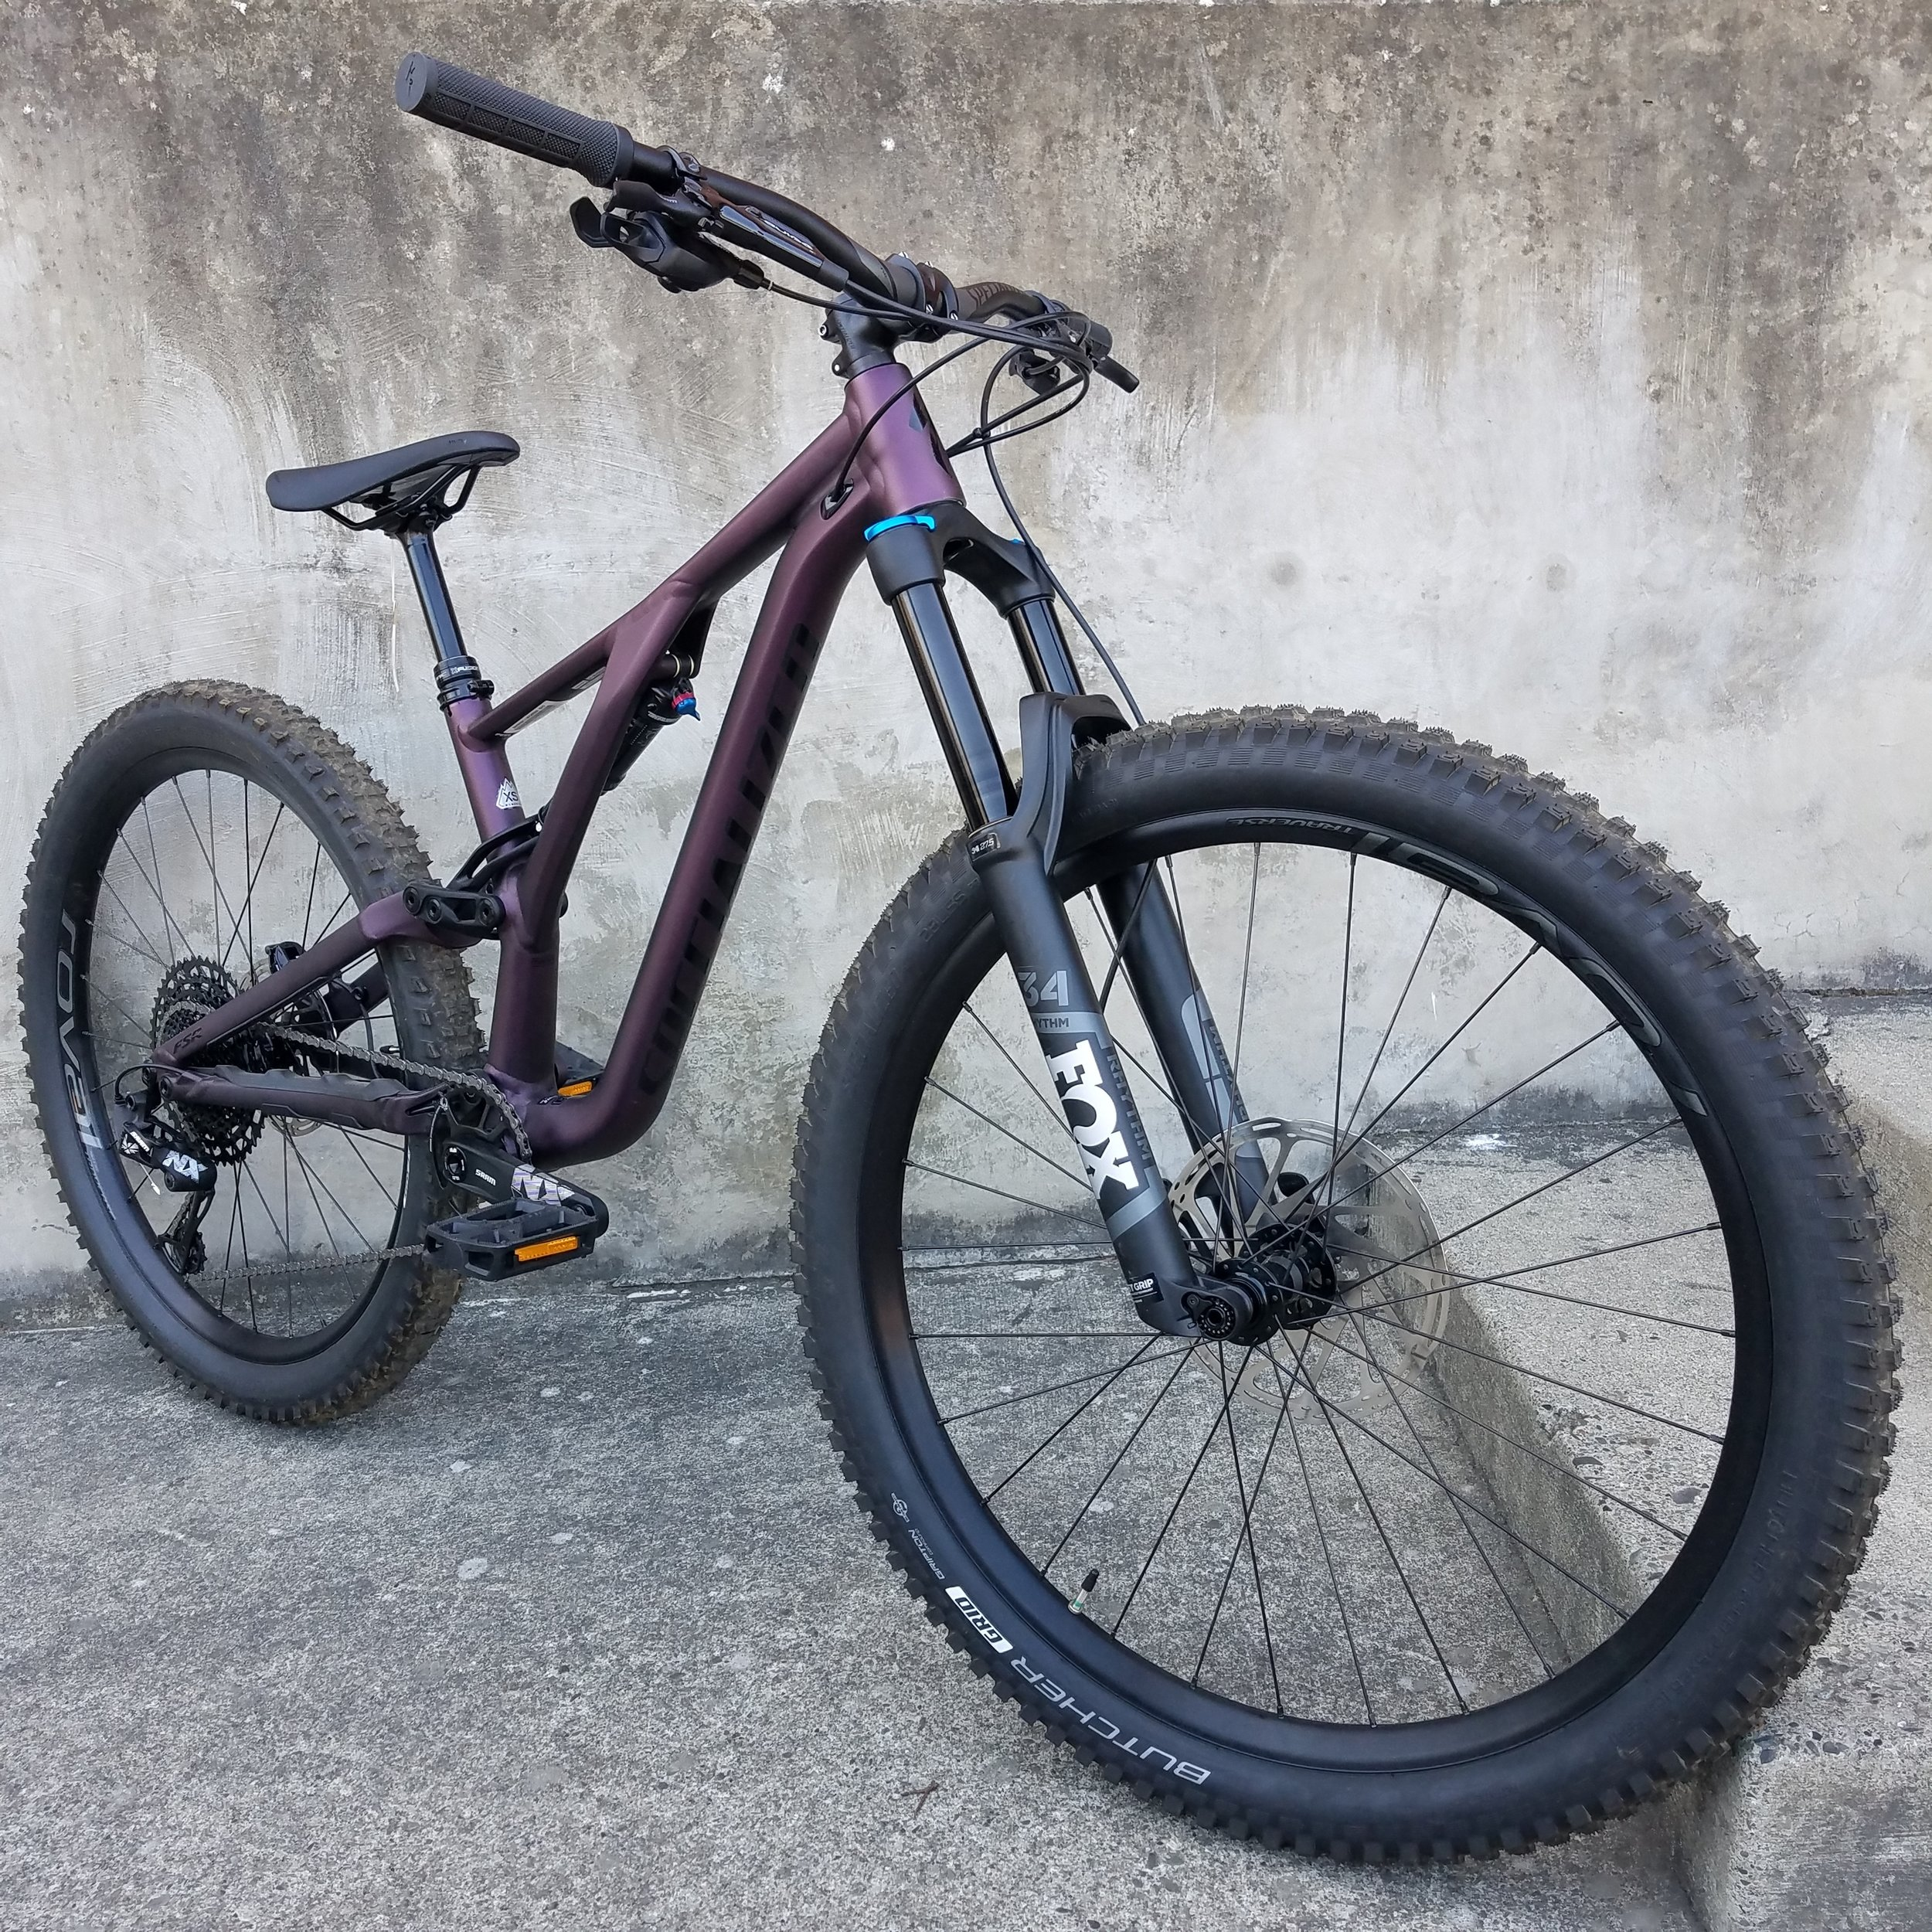 2019 Specialized Stumpjumper Comp 27.5 - $3,320Sizes Available : Extra Small, Medium, LargeWe are happy to order you any size or model you need.Demo Available